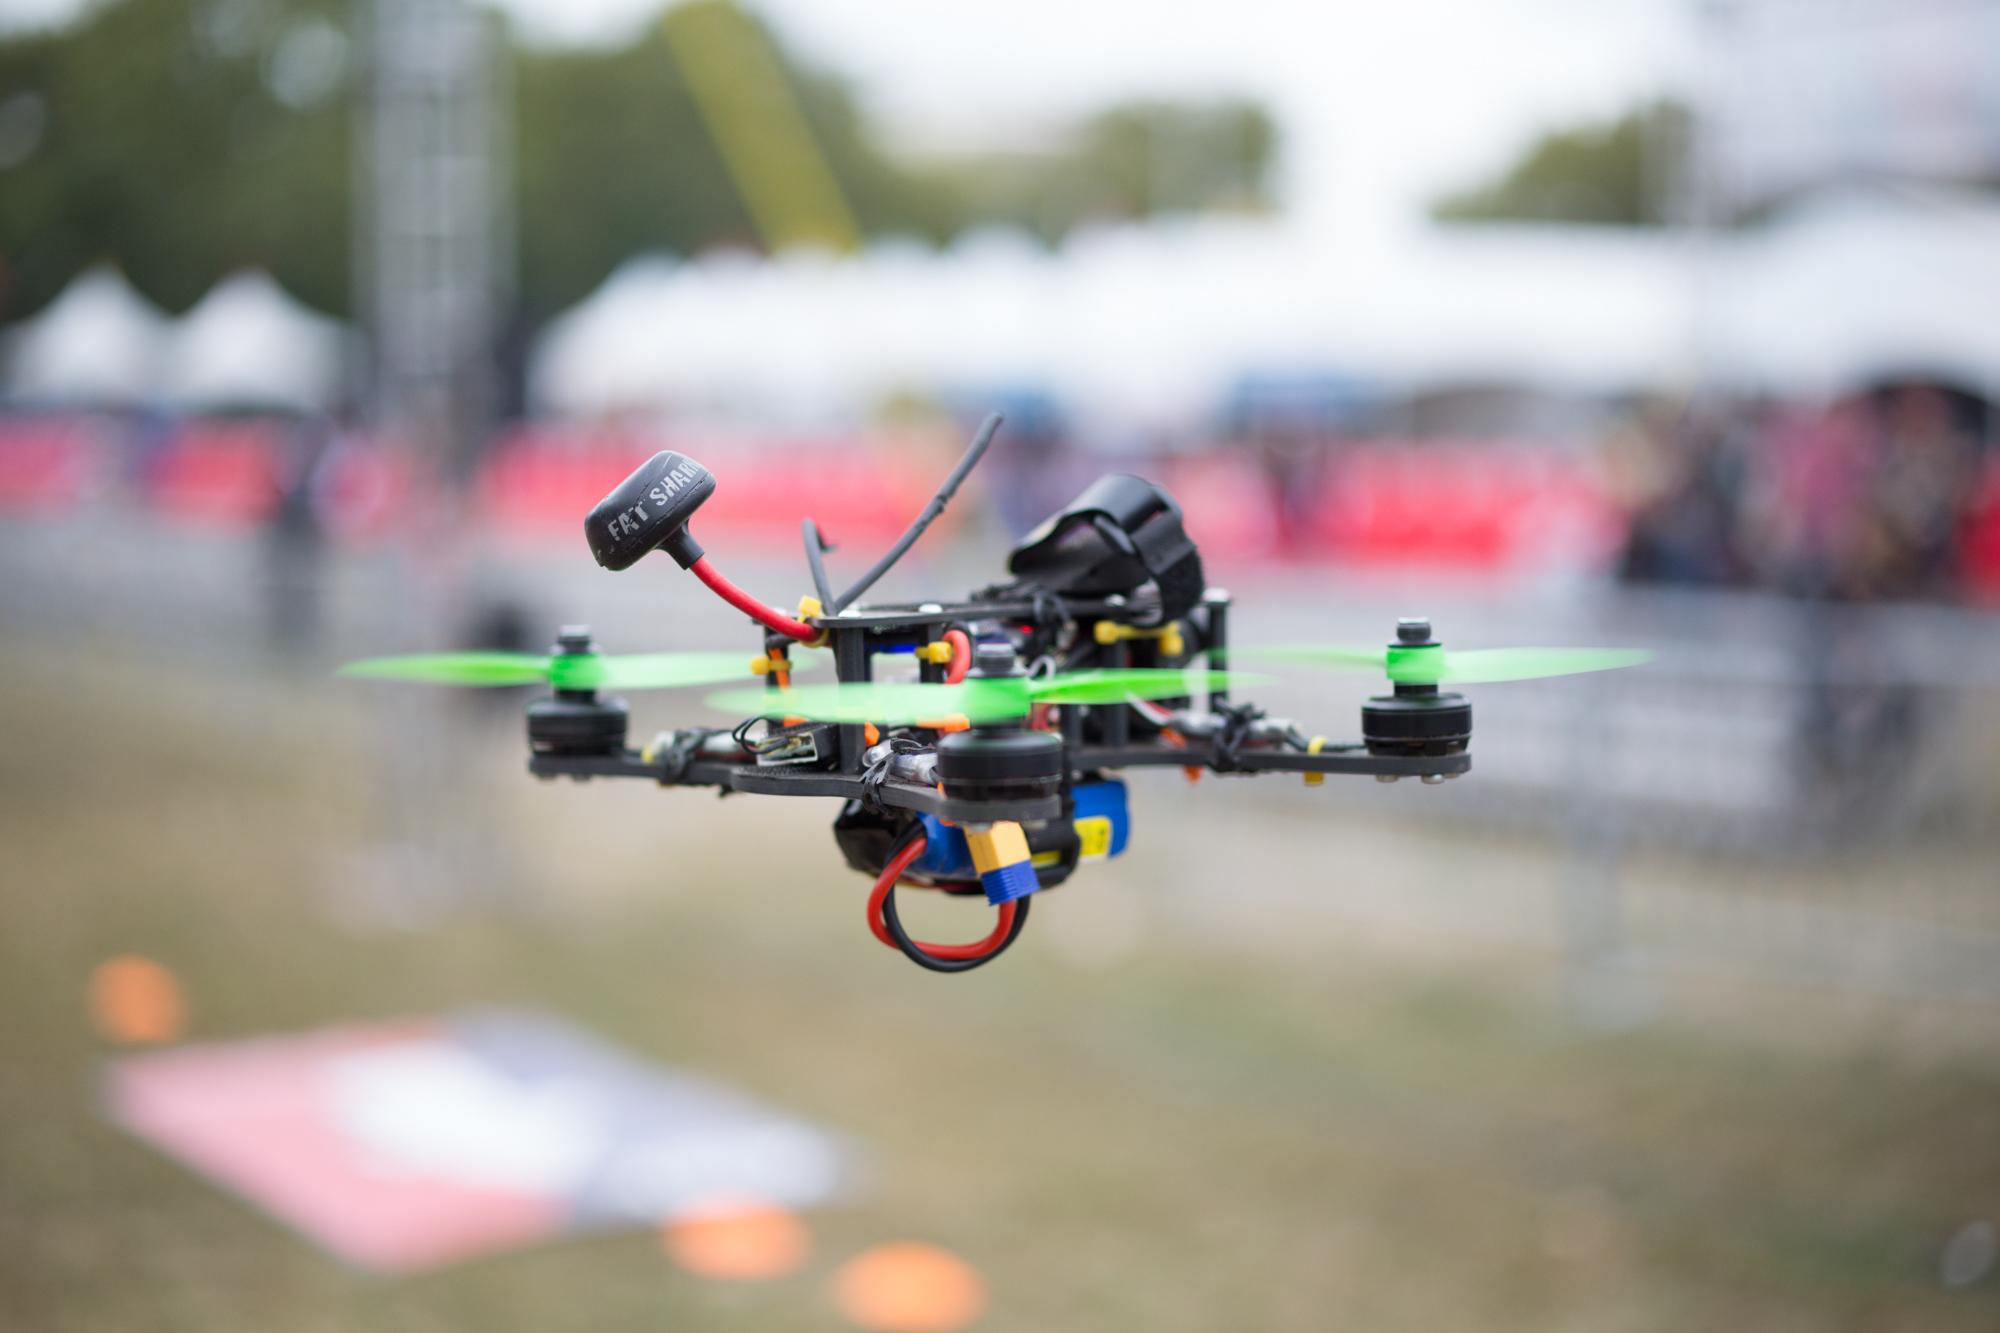 Drone Sports and Education Are Under Attack in California